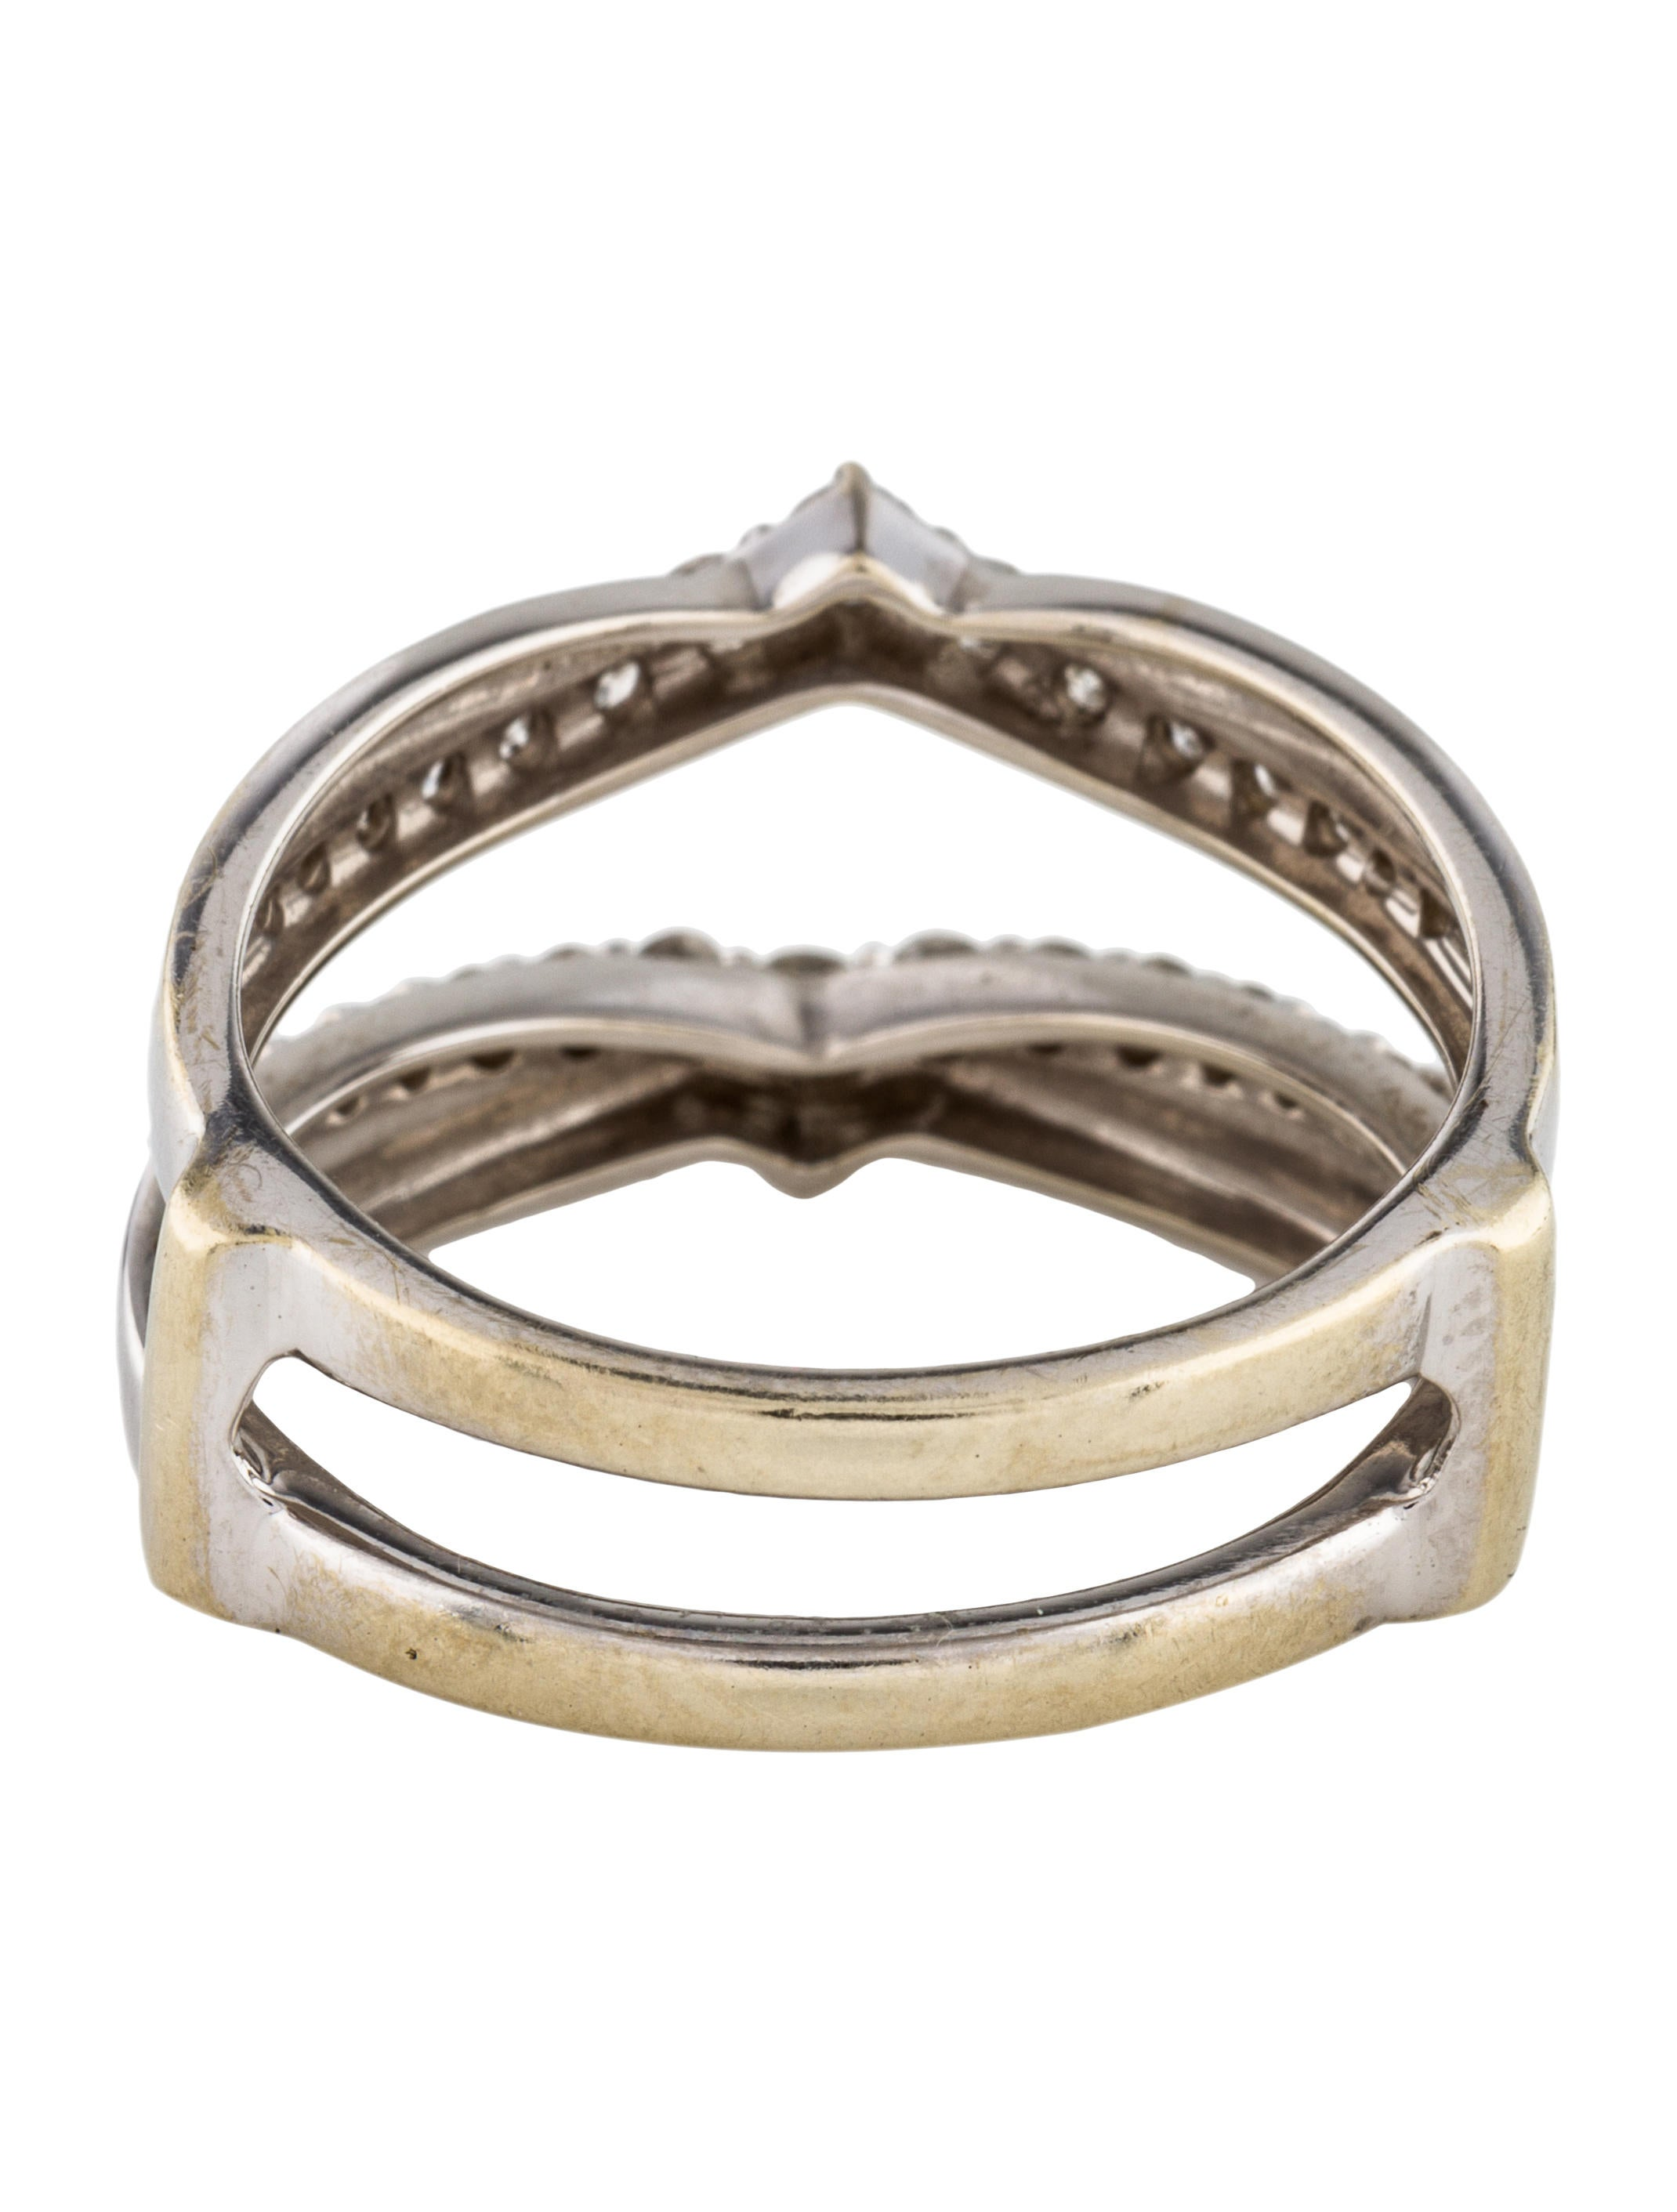 rings inspirational guard enhancer of ring wedding enhancers new ideas lovely